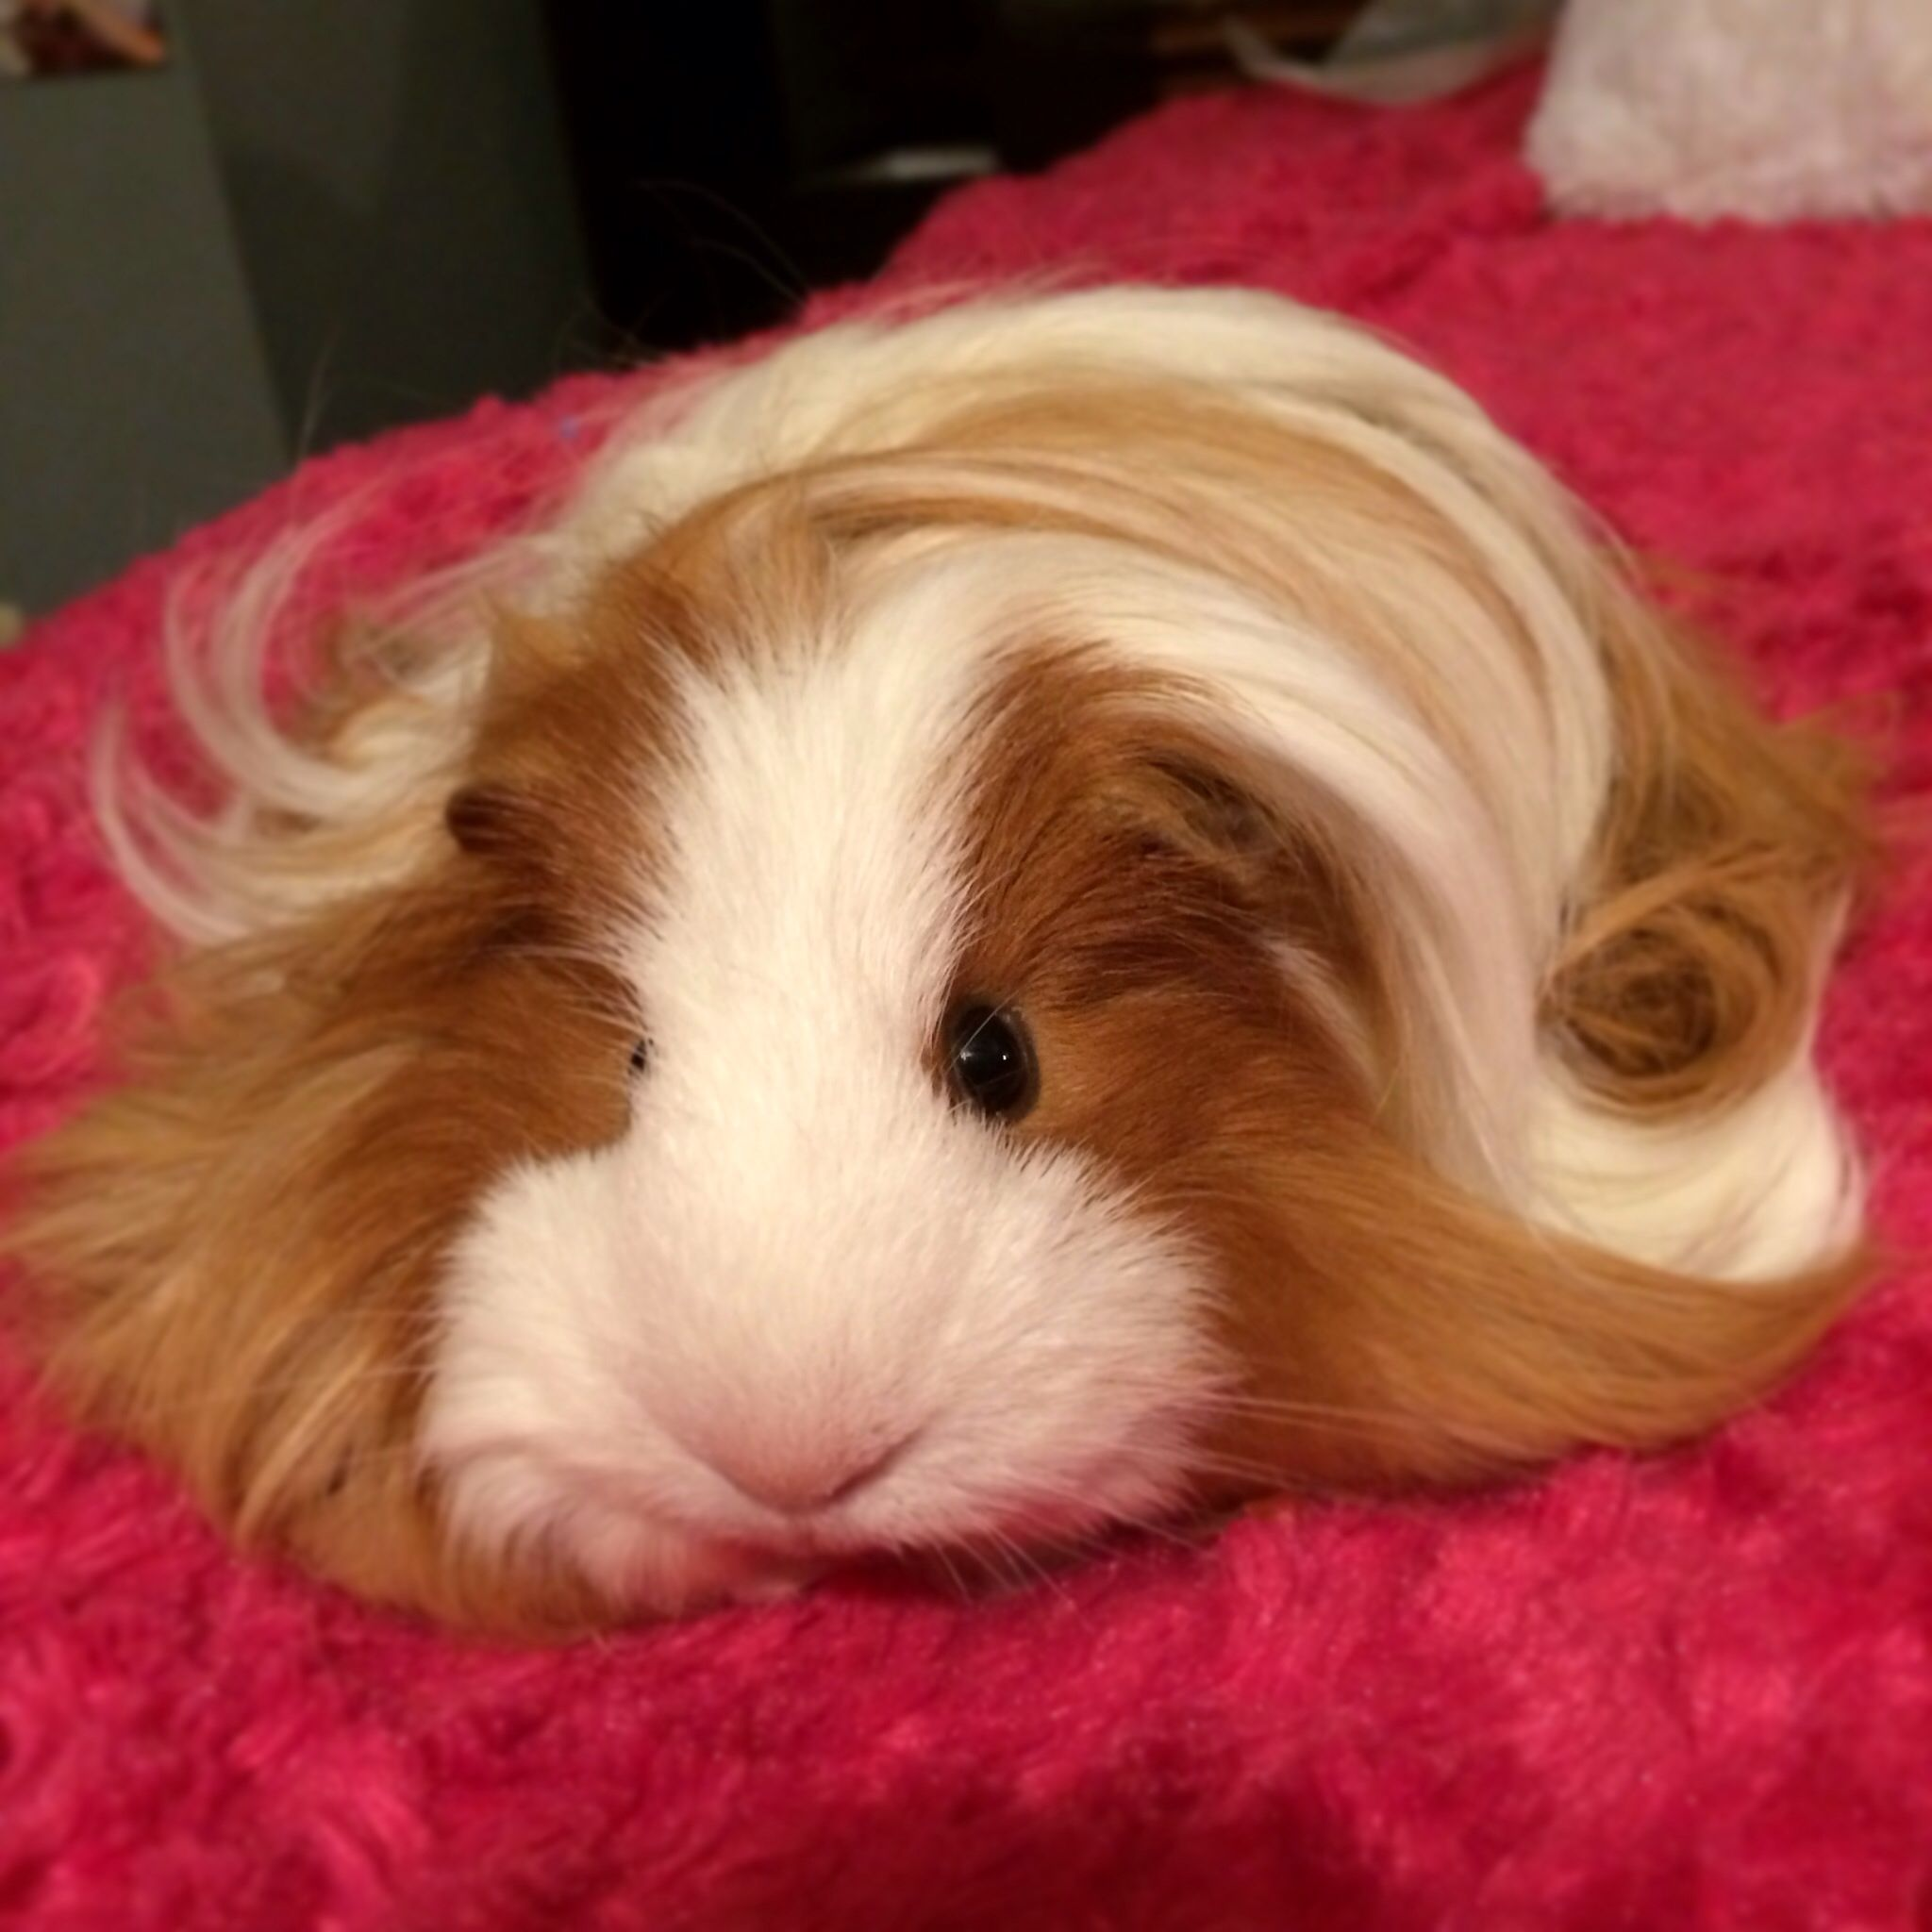 Long haired guinea pig - photo#47